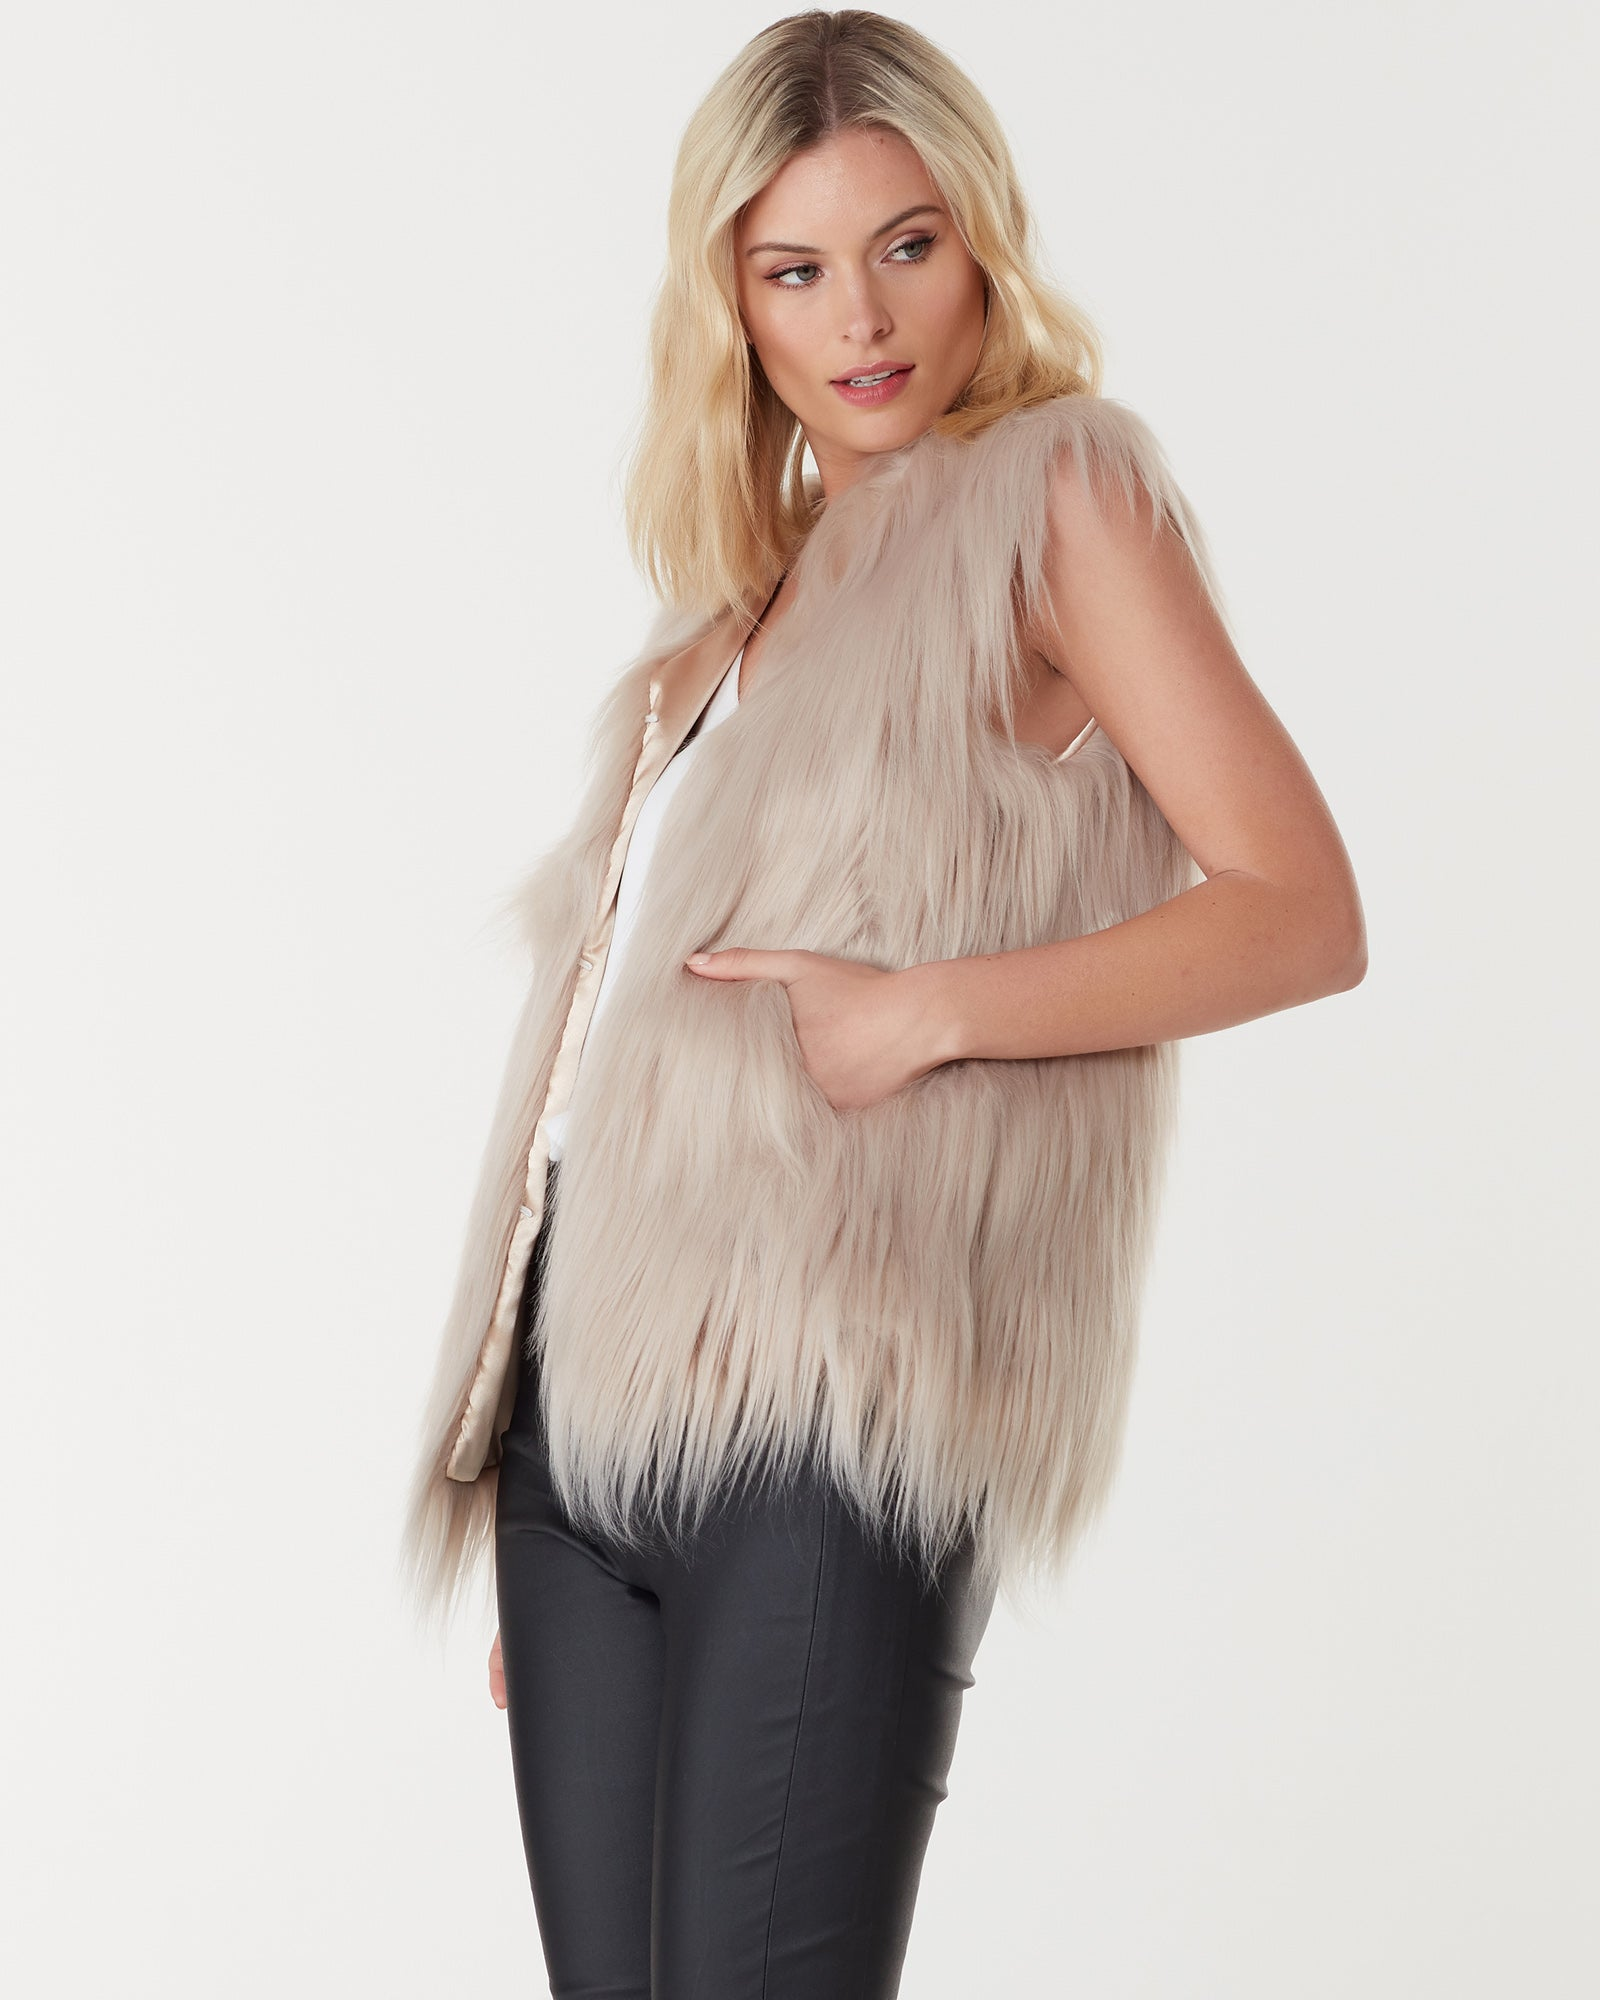 WINDSOR FAUX FUR VEST - LATTE